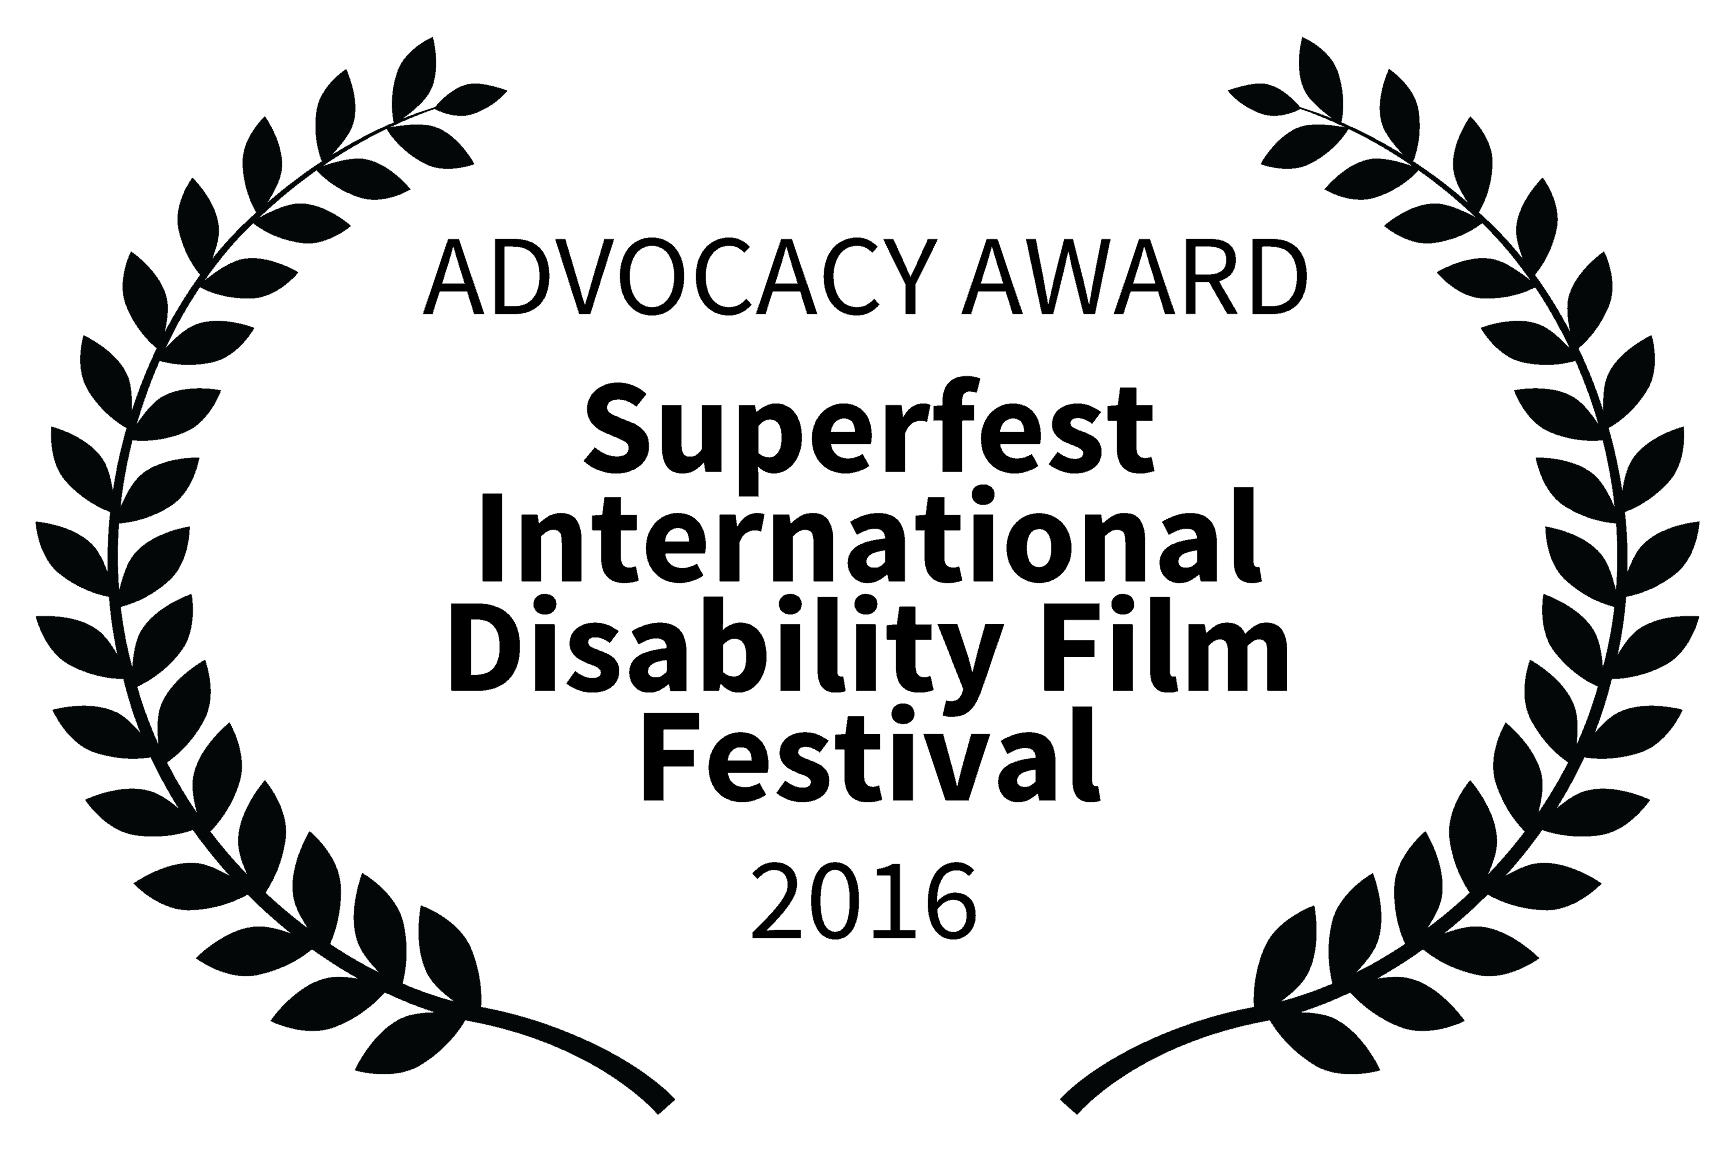 Film festival laurel - two olive branches surround text that reads Advocacy Award Superfest International Disability Film Festival 2016